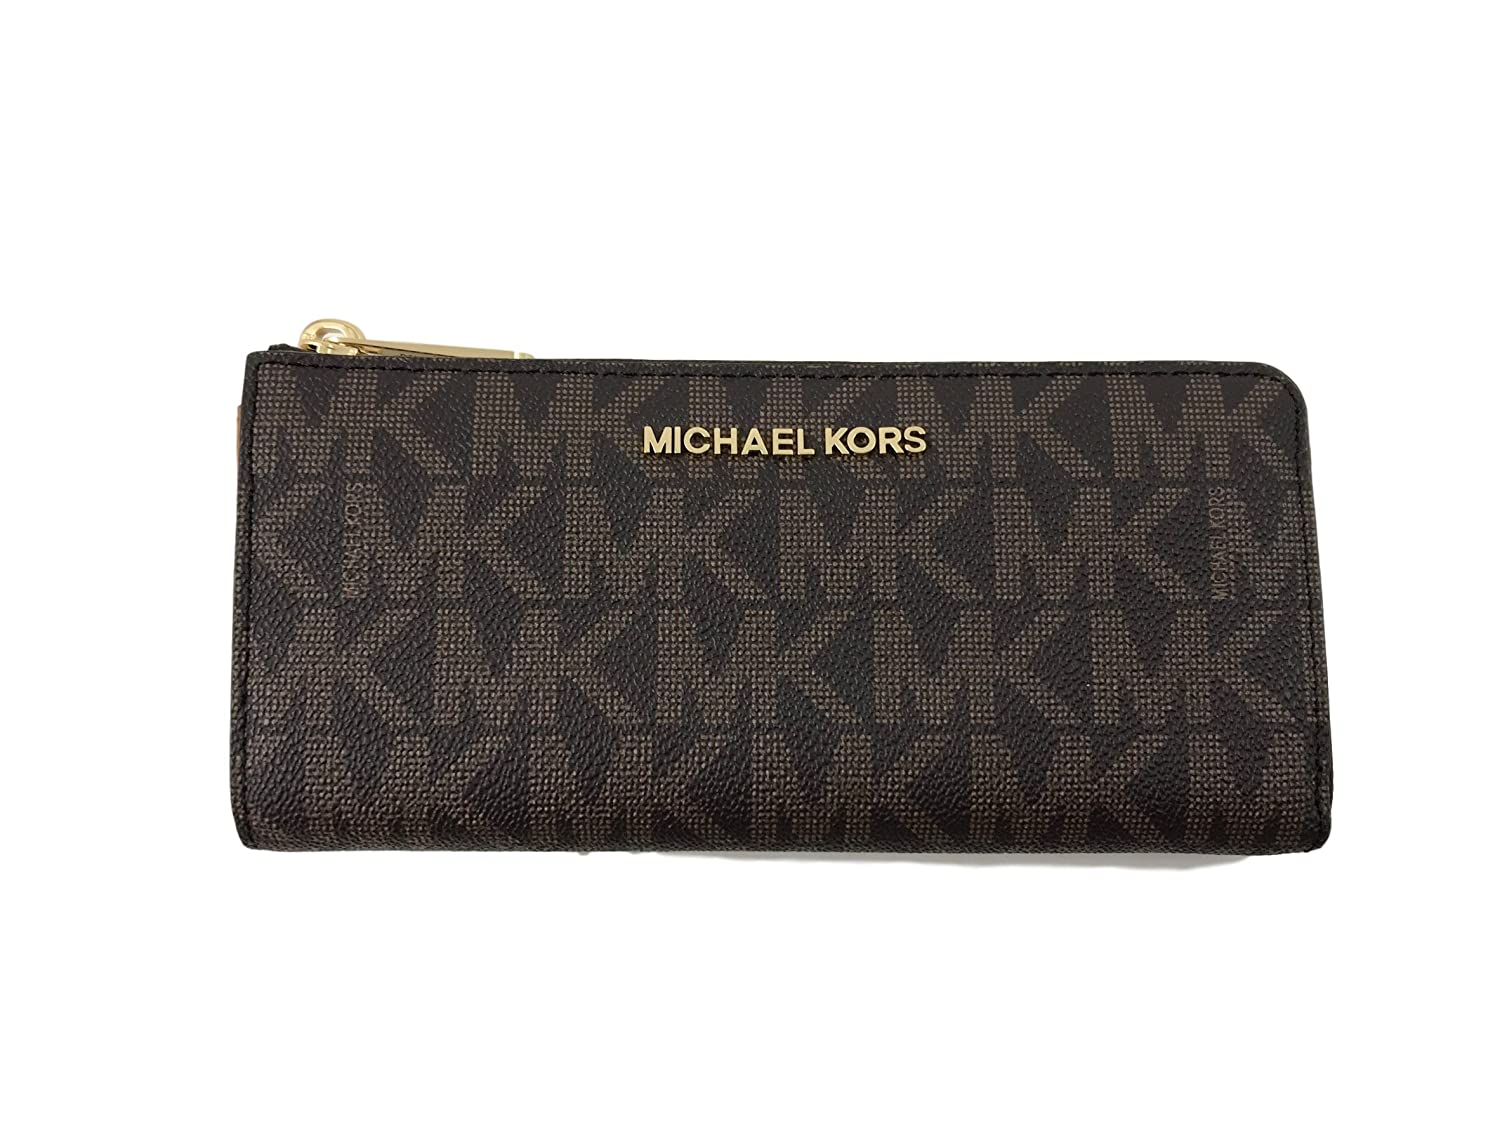 ed3508d408a4 Michael Kors Jet Set Travel PVC Signature Large Three Quarter Zip Around  Wallet in Brown at Amazon Women's Clothing store: